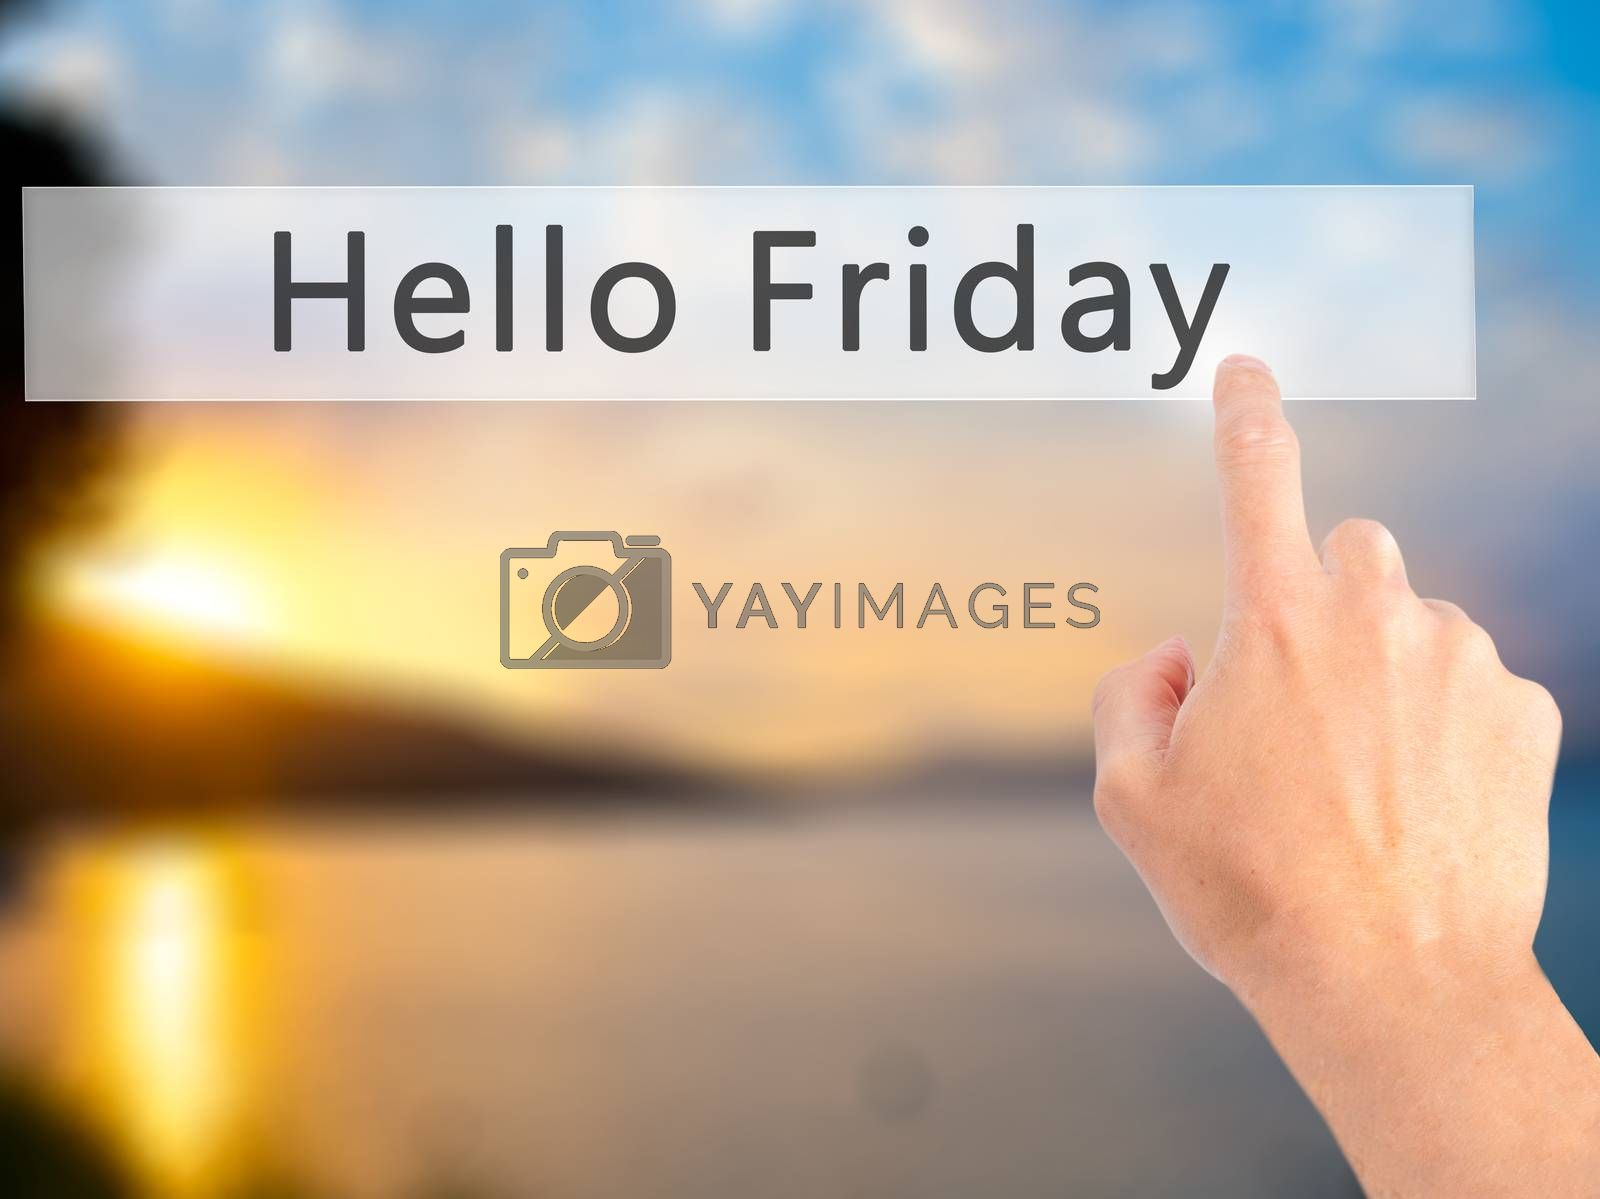 Hello Friday - Hand pressing a button on blurred background conc by jackald